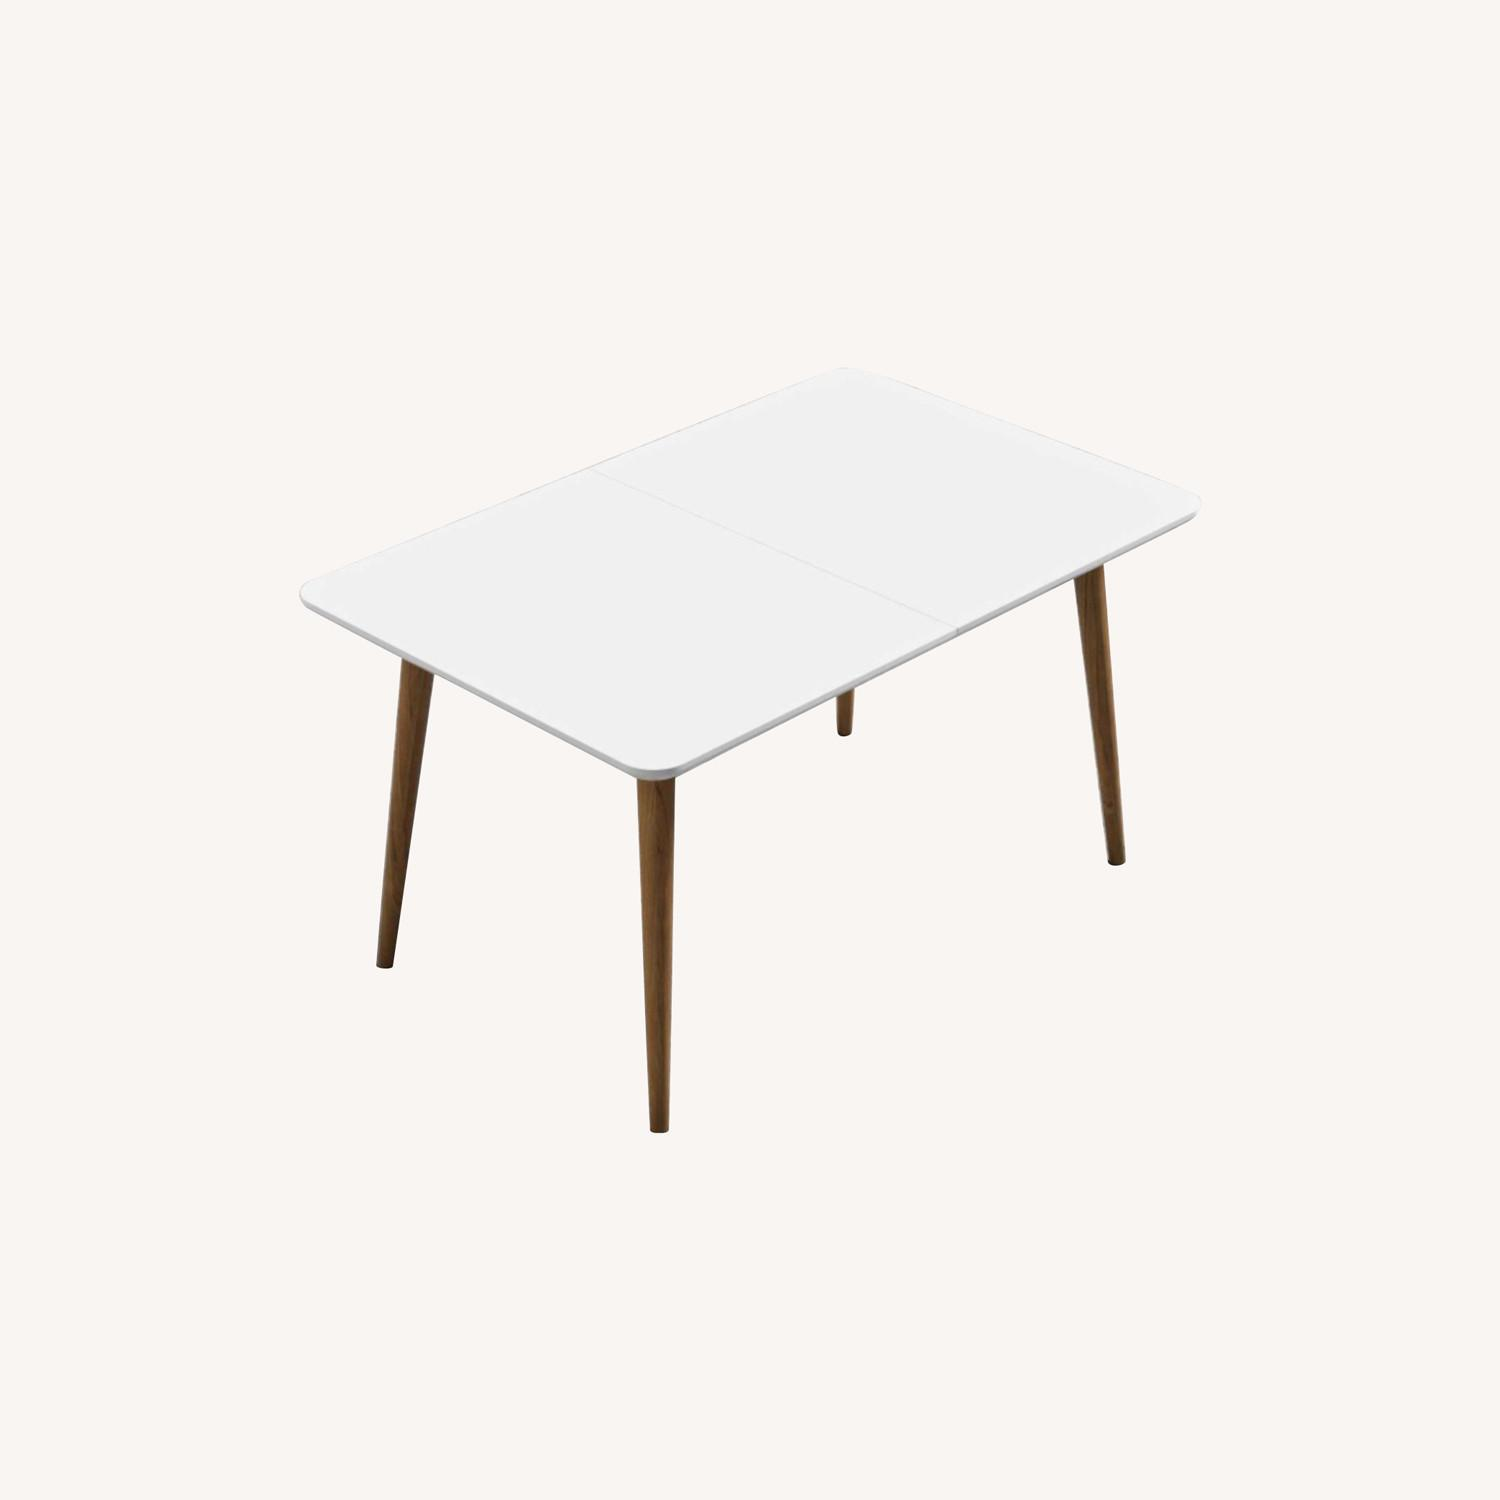 Rove Concepts White with Wood Dining Table - image-0